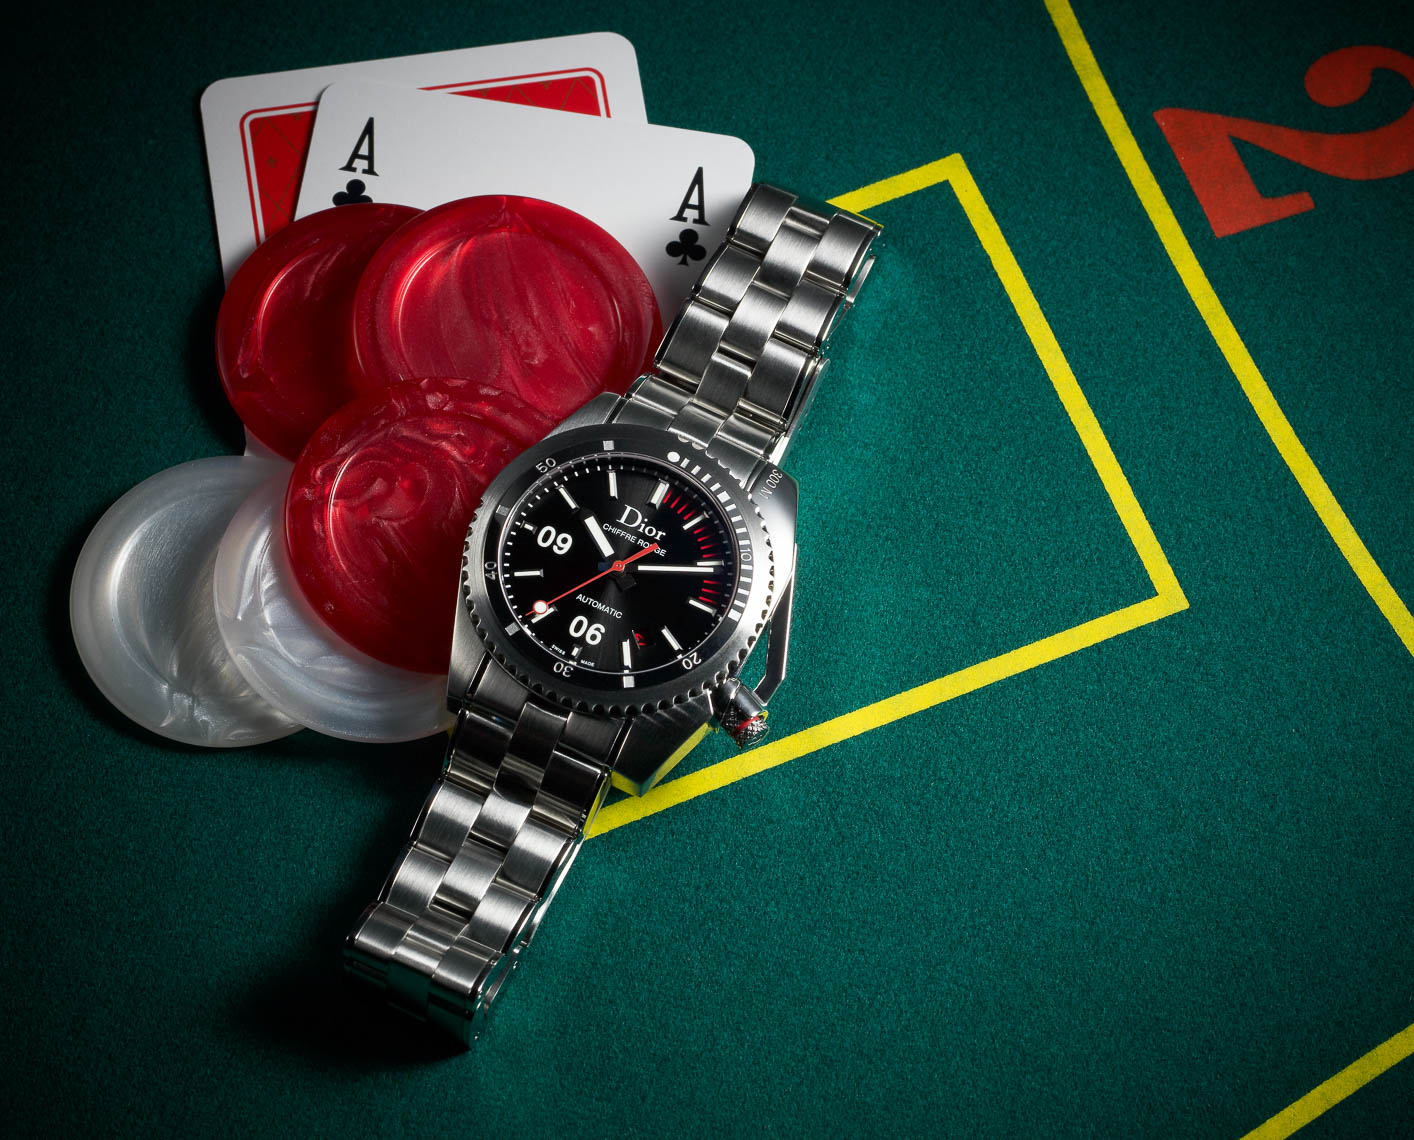 Dior mens watch with playing cards and poker chips gambling